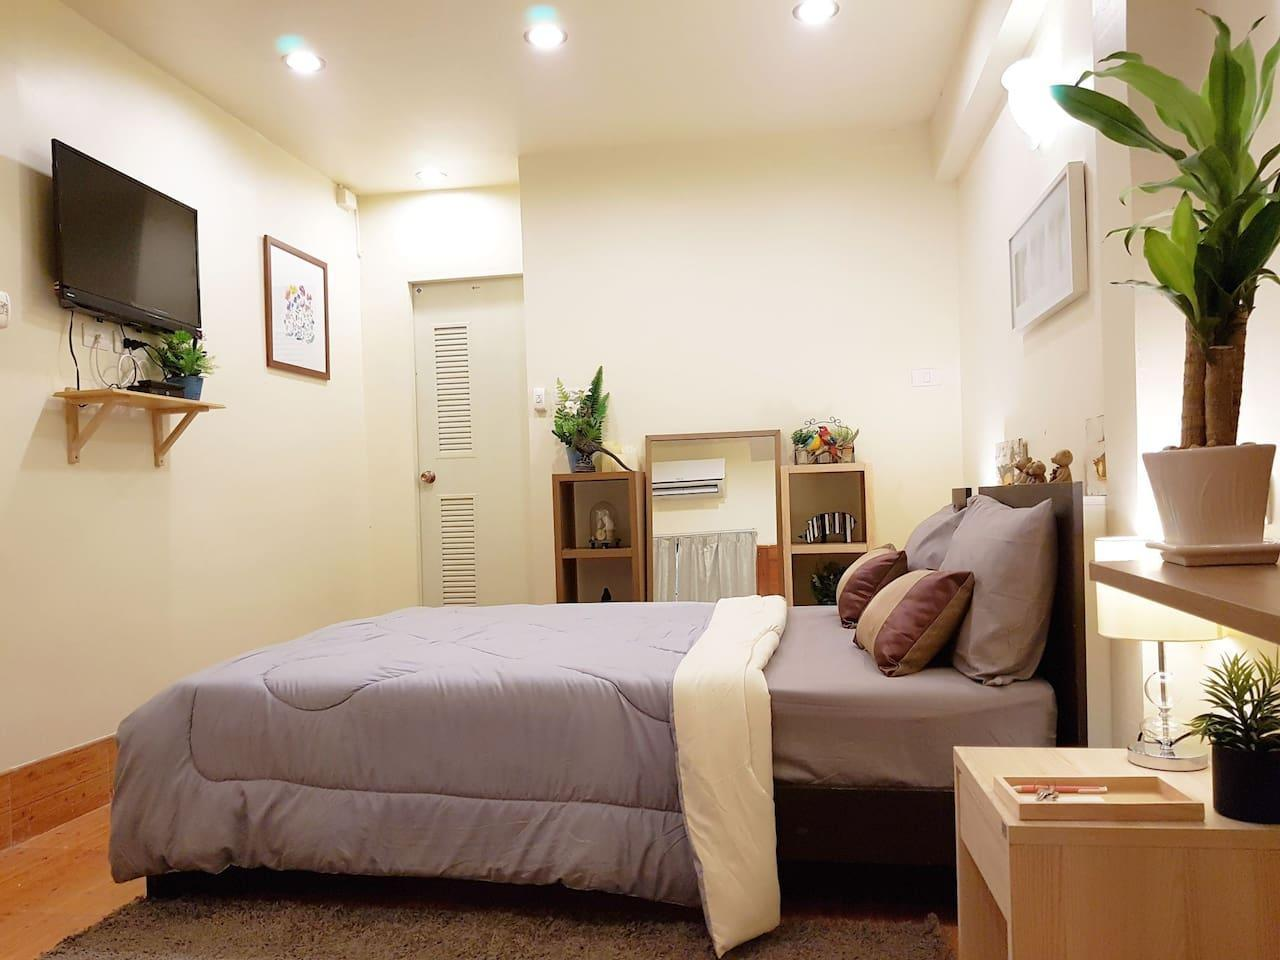 Studio Room 10 Mins To Don Mueang Airport  DMK